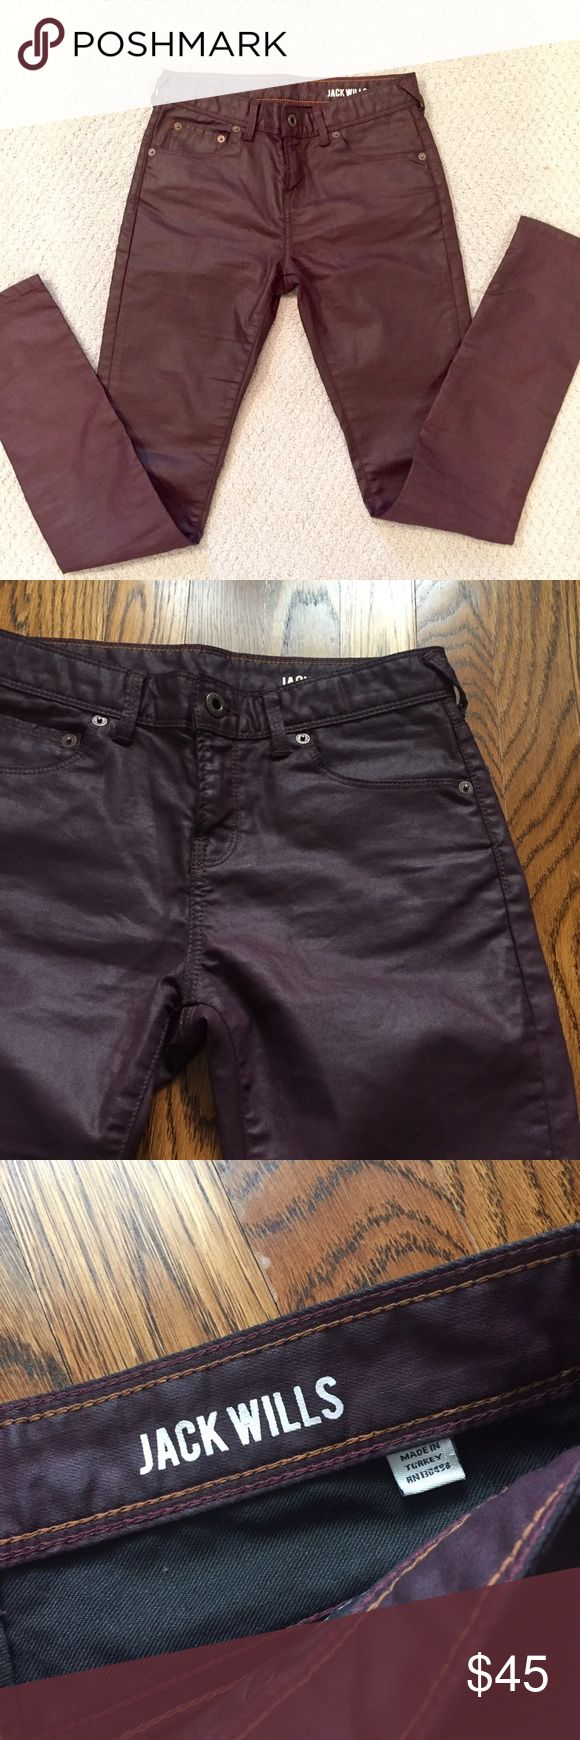 Jack wills Coated jeans Worn once to Maroon5 concert in NYC. Excellent condition. Premium quality. W25. Coated (waxed) denim. Burgundy color. Skinny Jack Wills Jeans Skinny